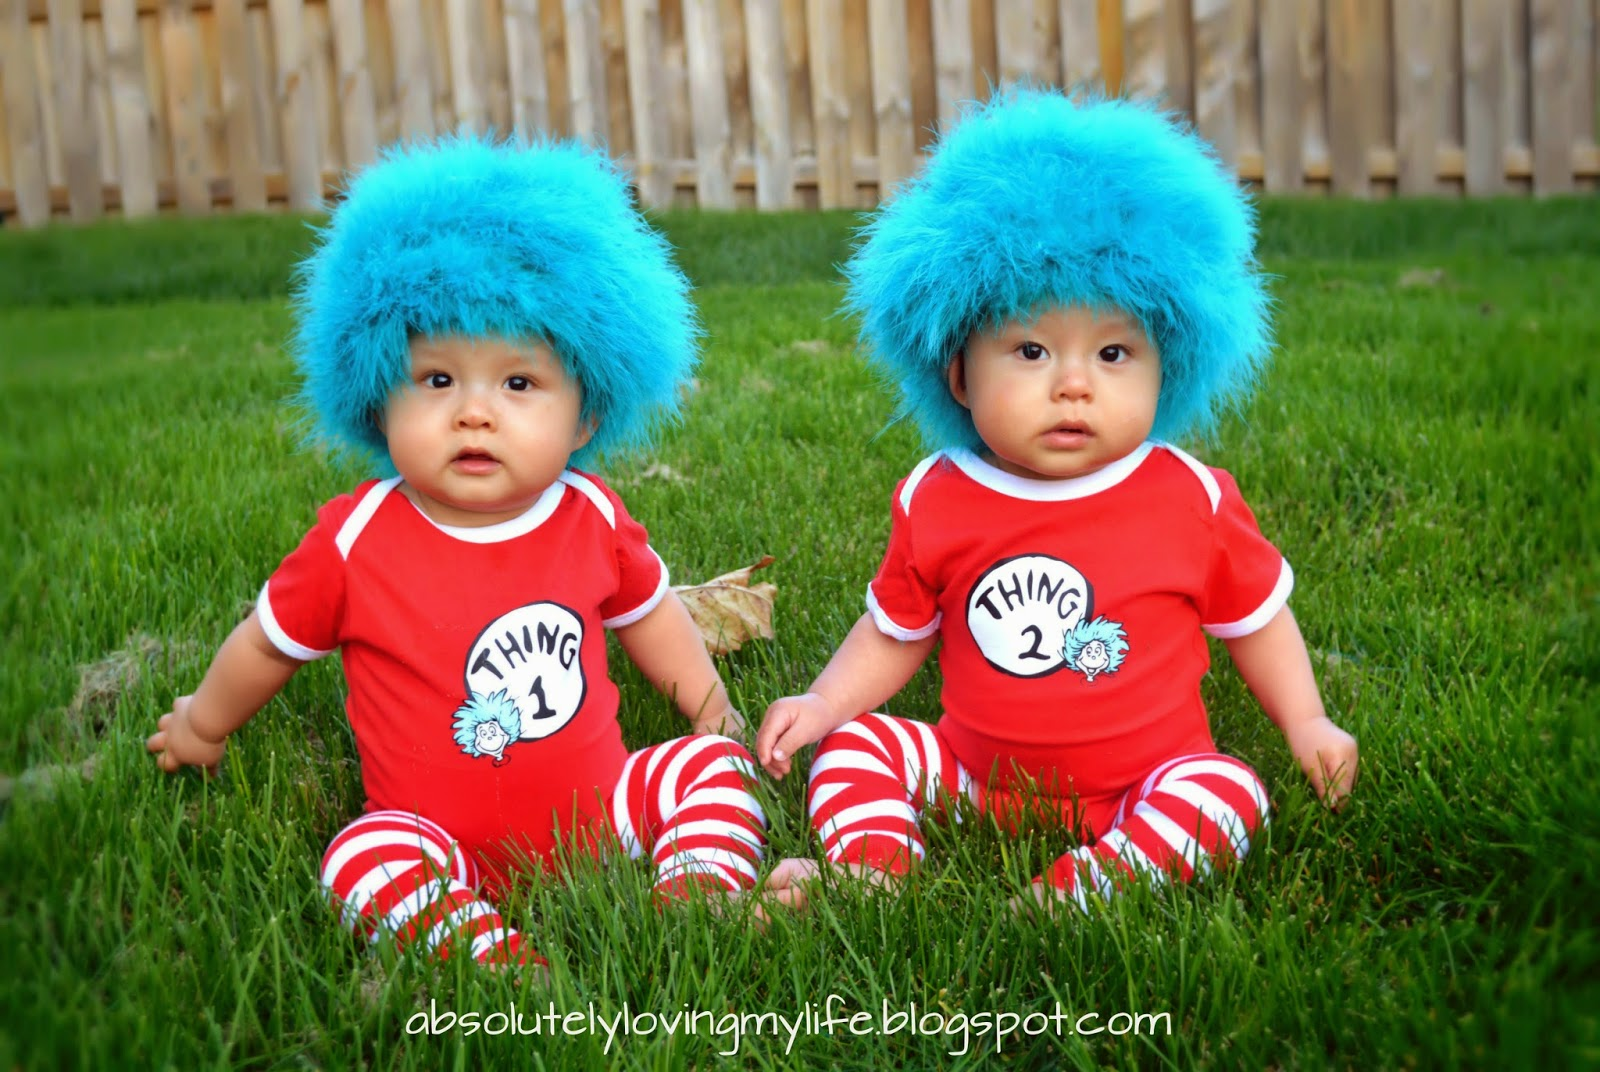 DIY Thing 1 and Thing 2 Baby Costumes  sc 1 st  Loving Life : baby costume diy  - Germanpascual.Com